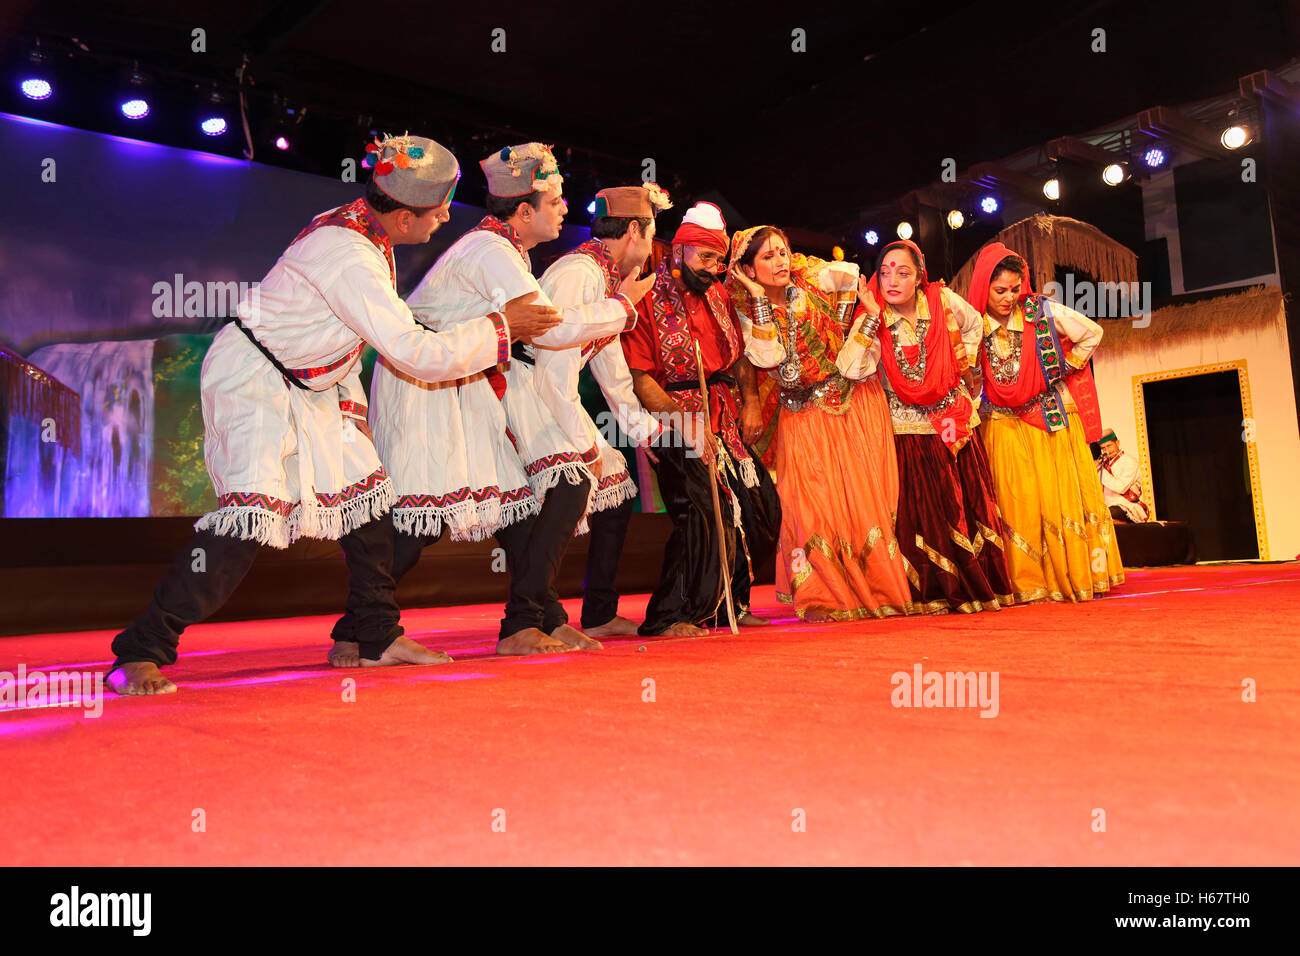 Lambada Dance, Himachal Pradesh, India - Stock Image